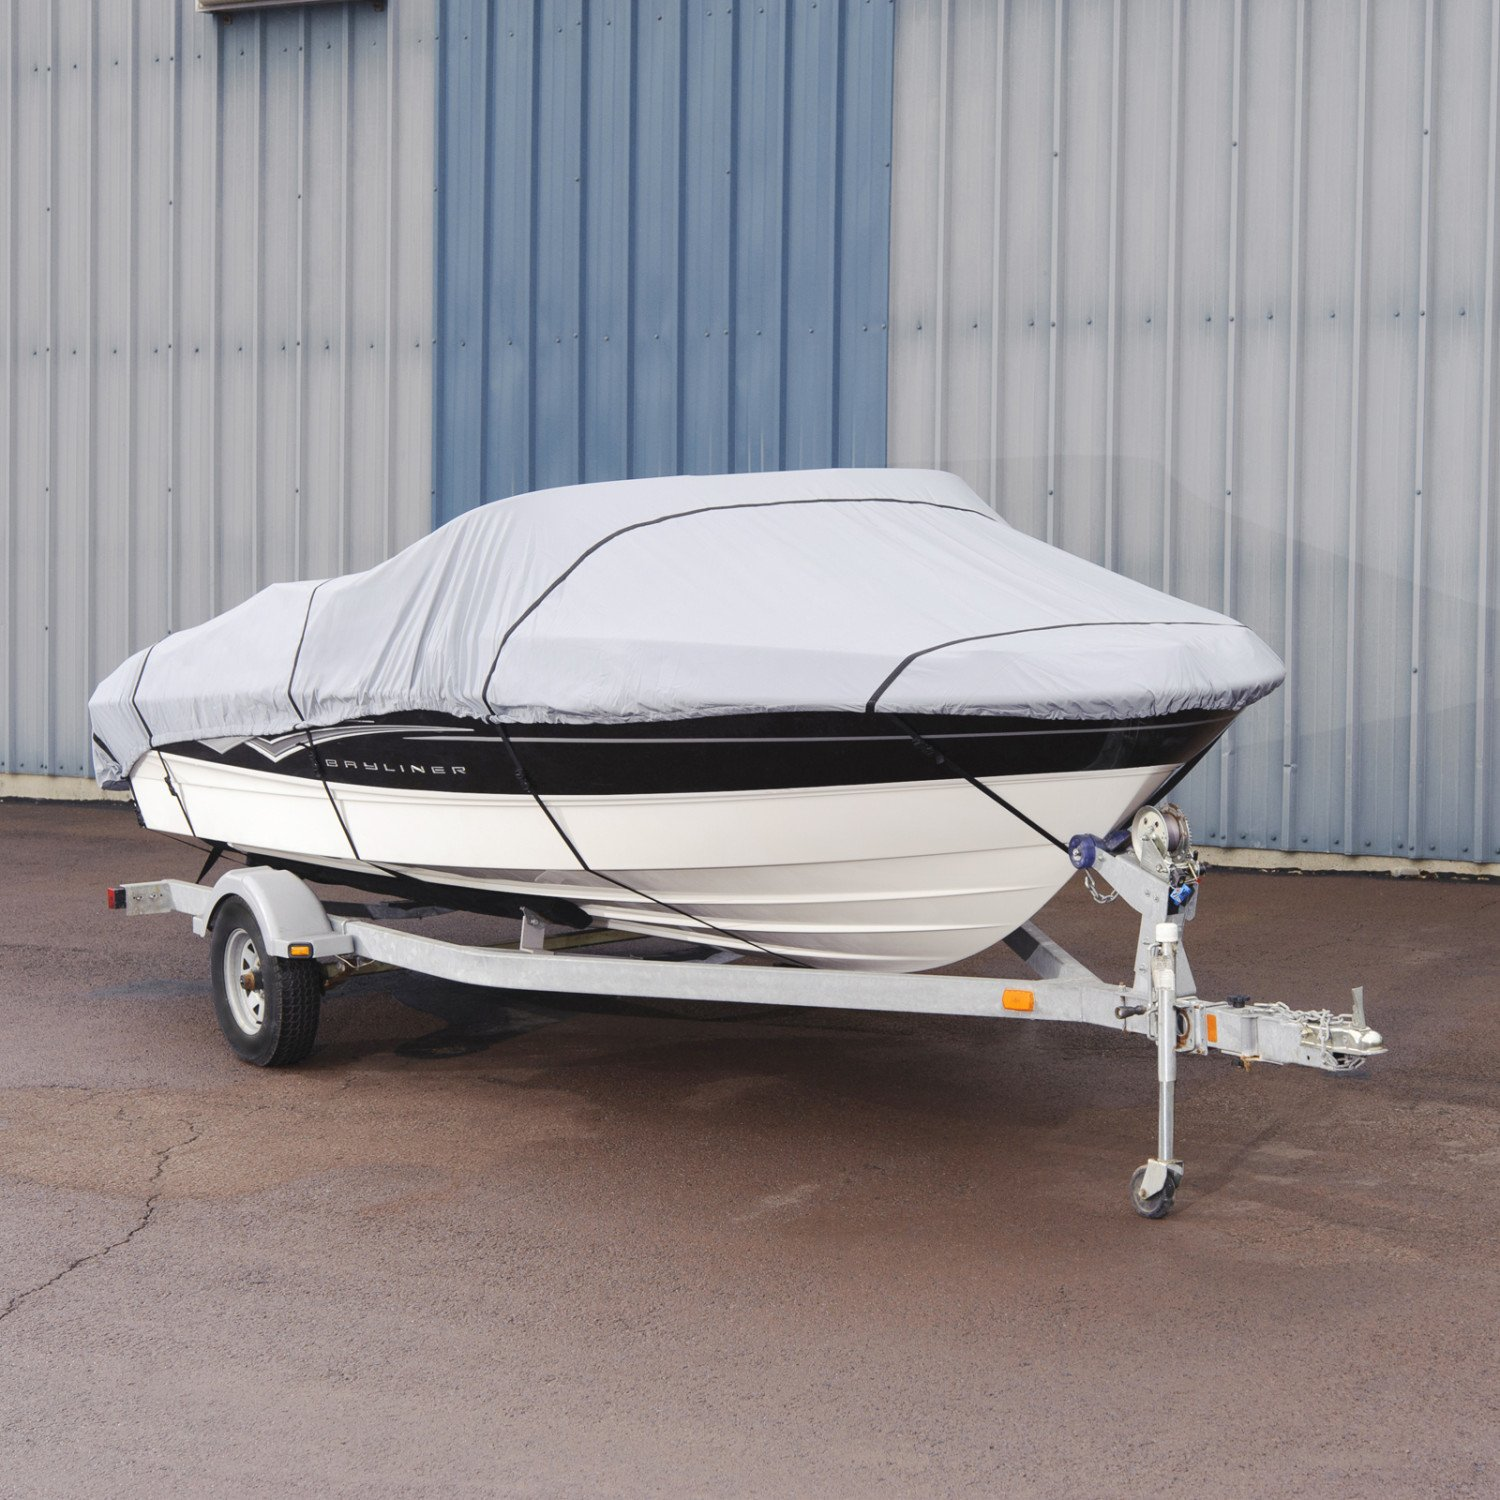 Budge 150 Denier Boat Cover fits V-Hull Runabout Boats B-150-X6 (20' on